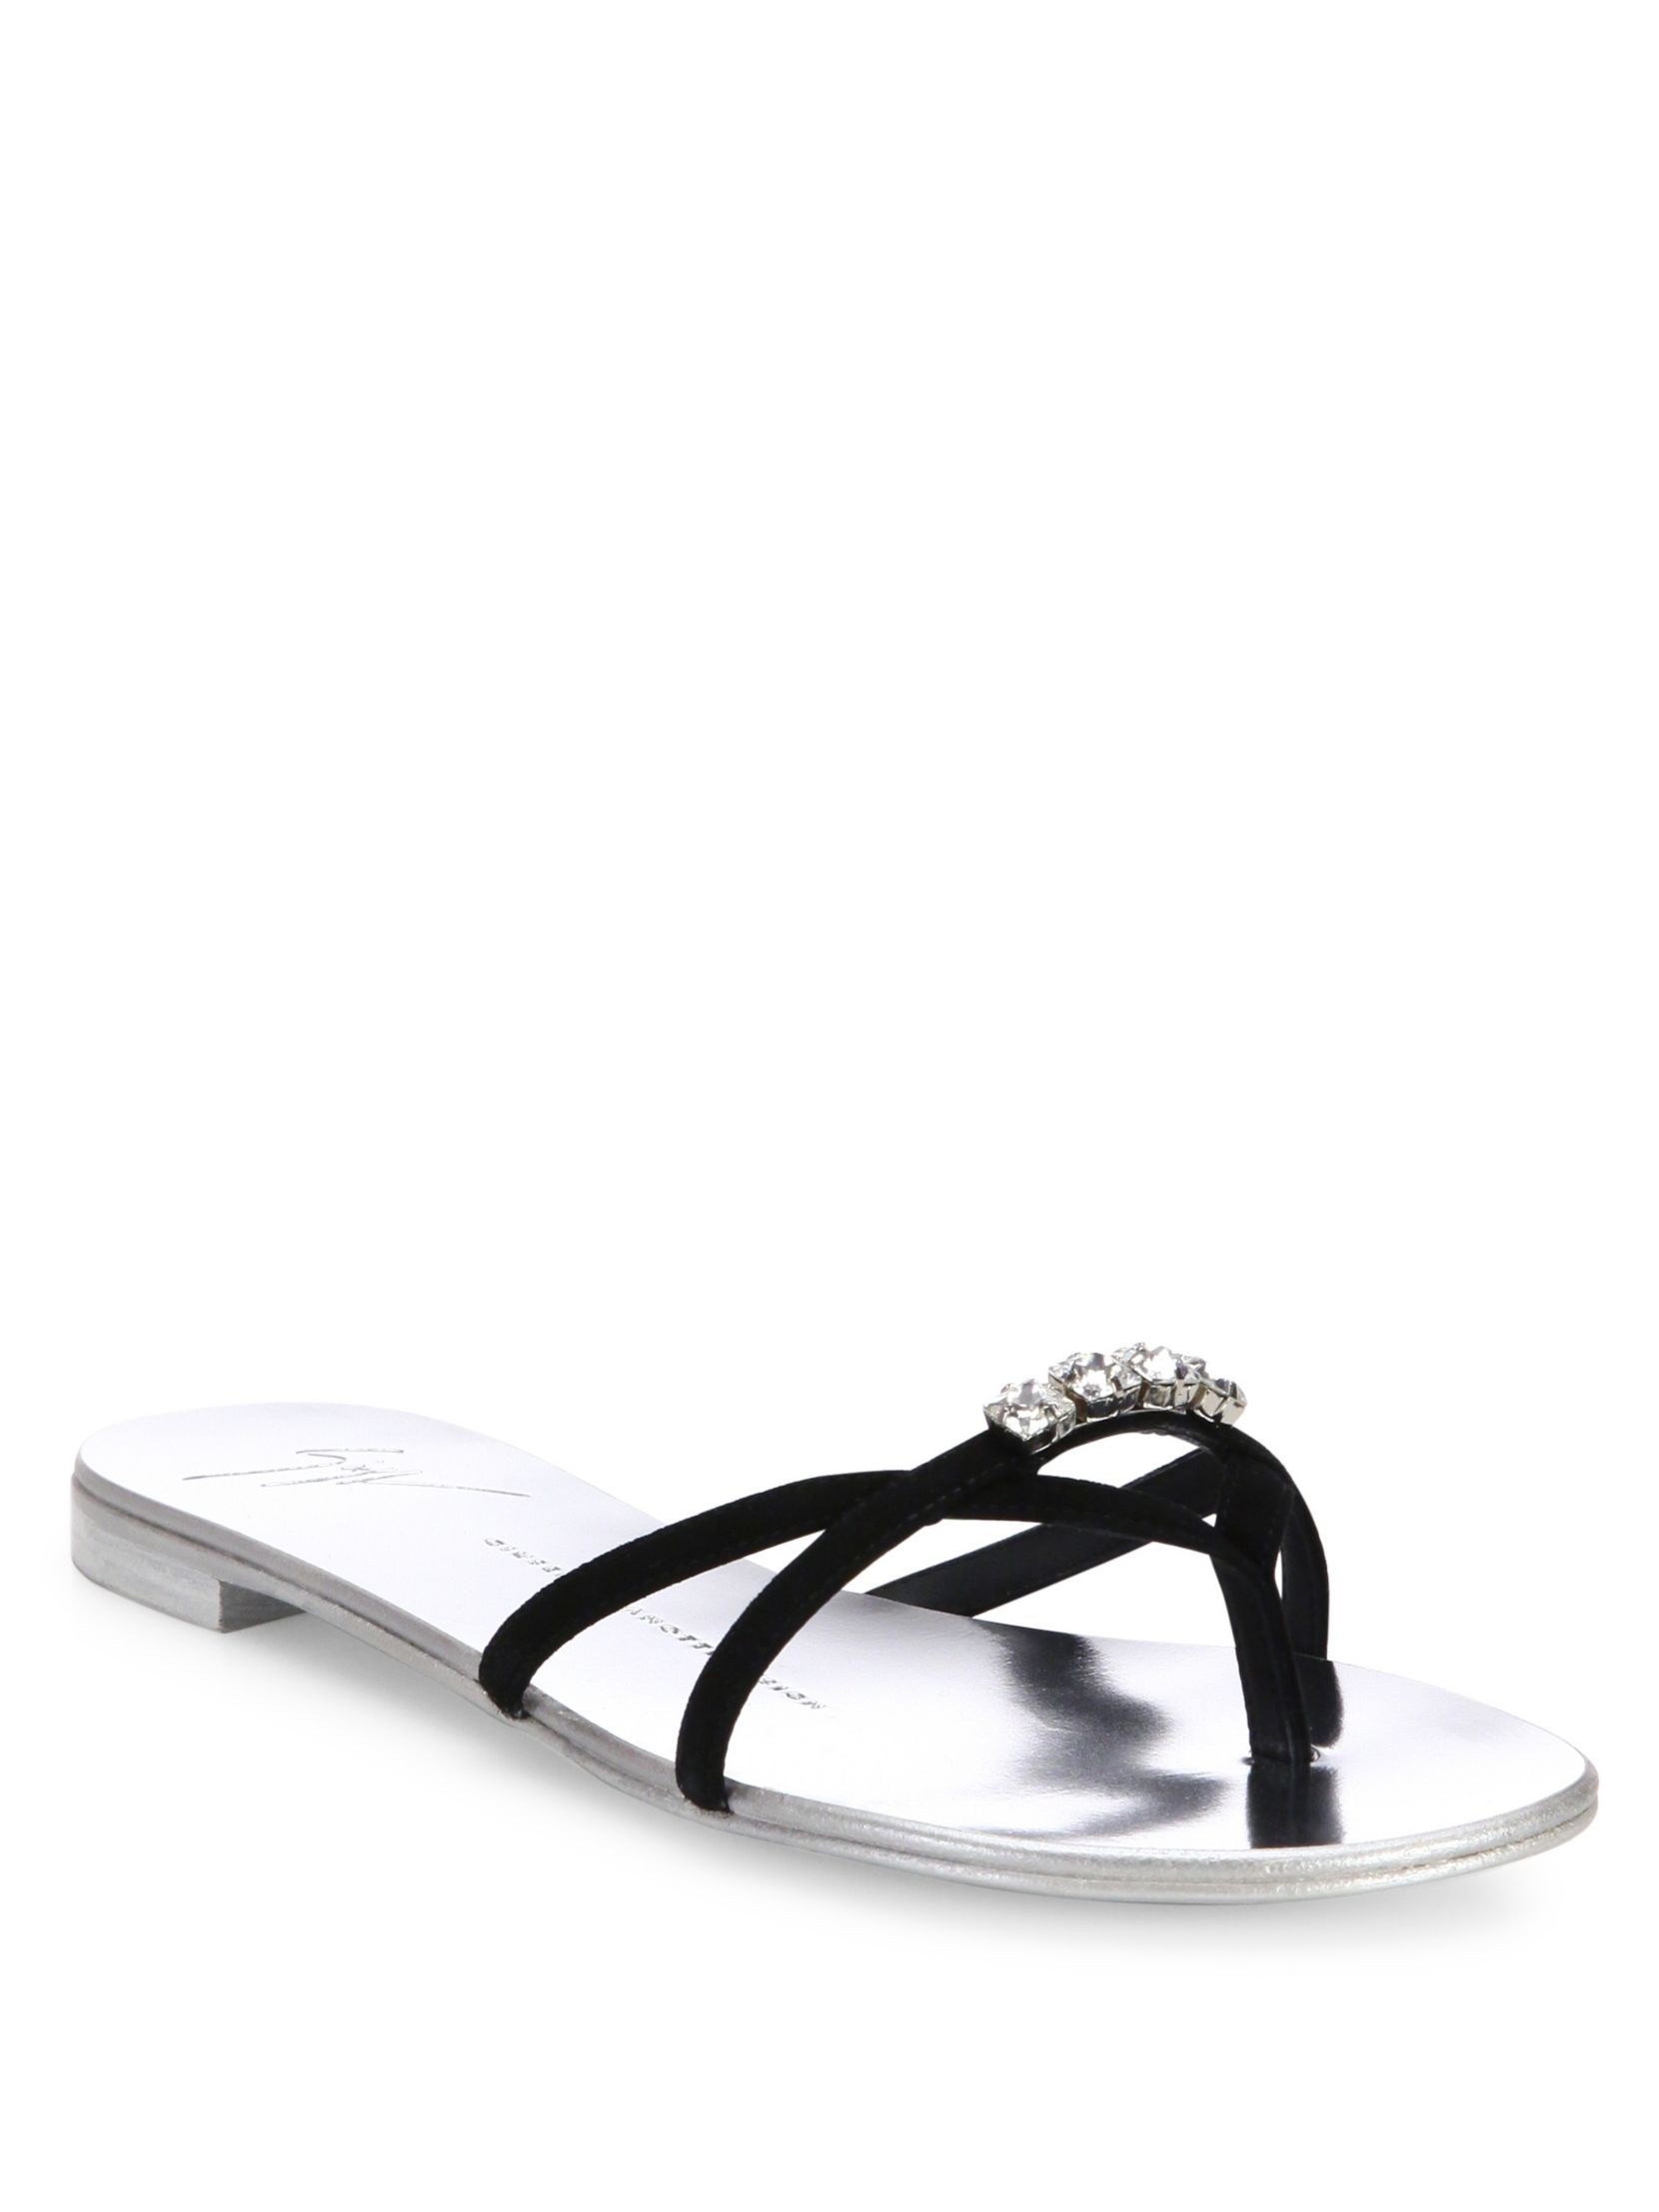 buy cheap clearance store outlet pay with visa Giuseppe Zanotti Suede Embellished Slide Sandals cheap reliable buy cheap exclusive sale looking for WbjkJ